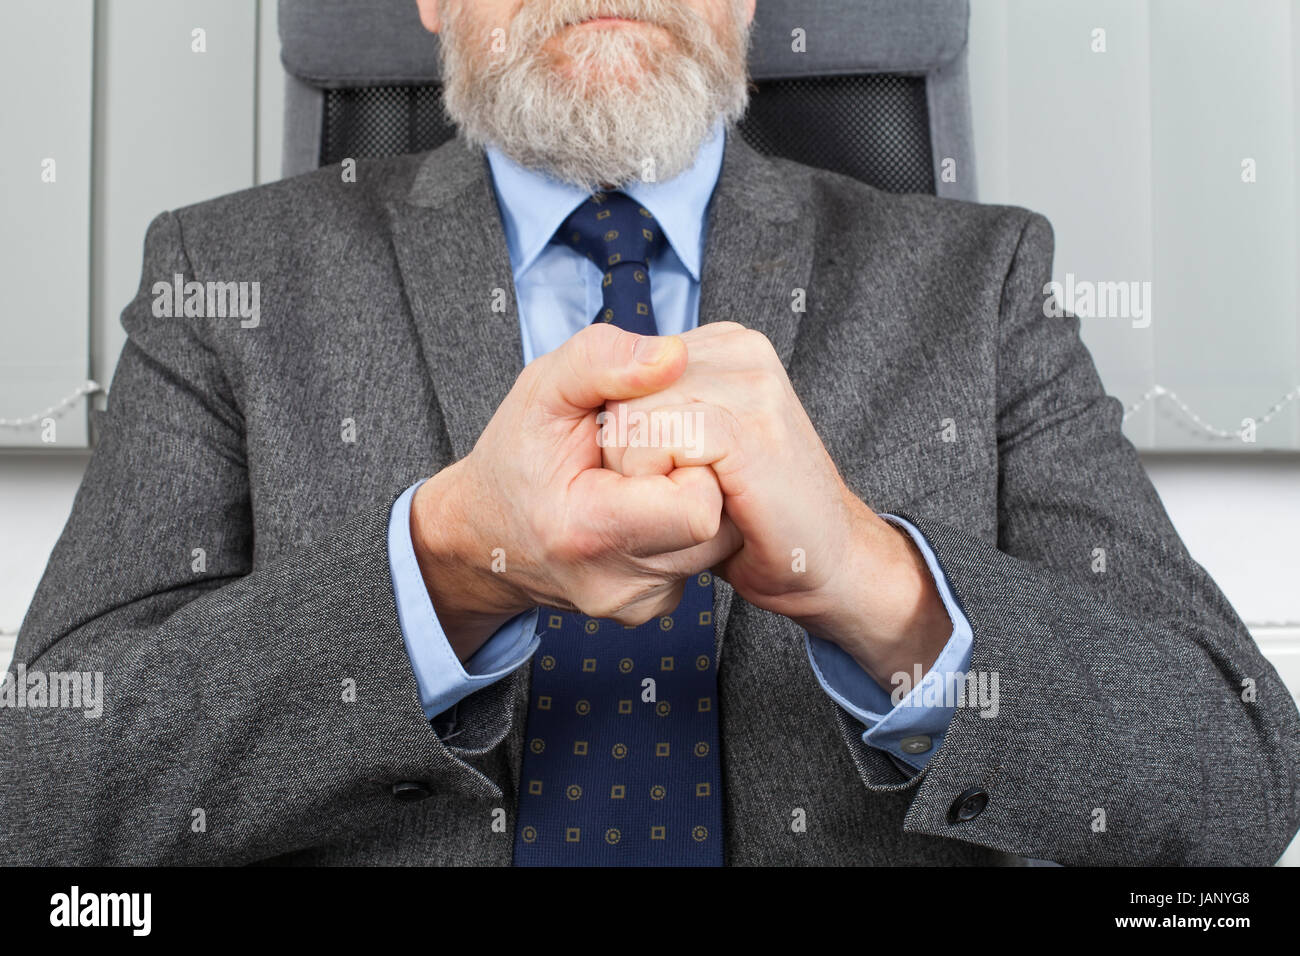 Close up picture of an elderly businessman's hands - Stock Image